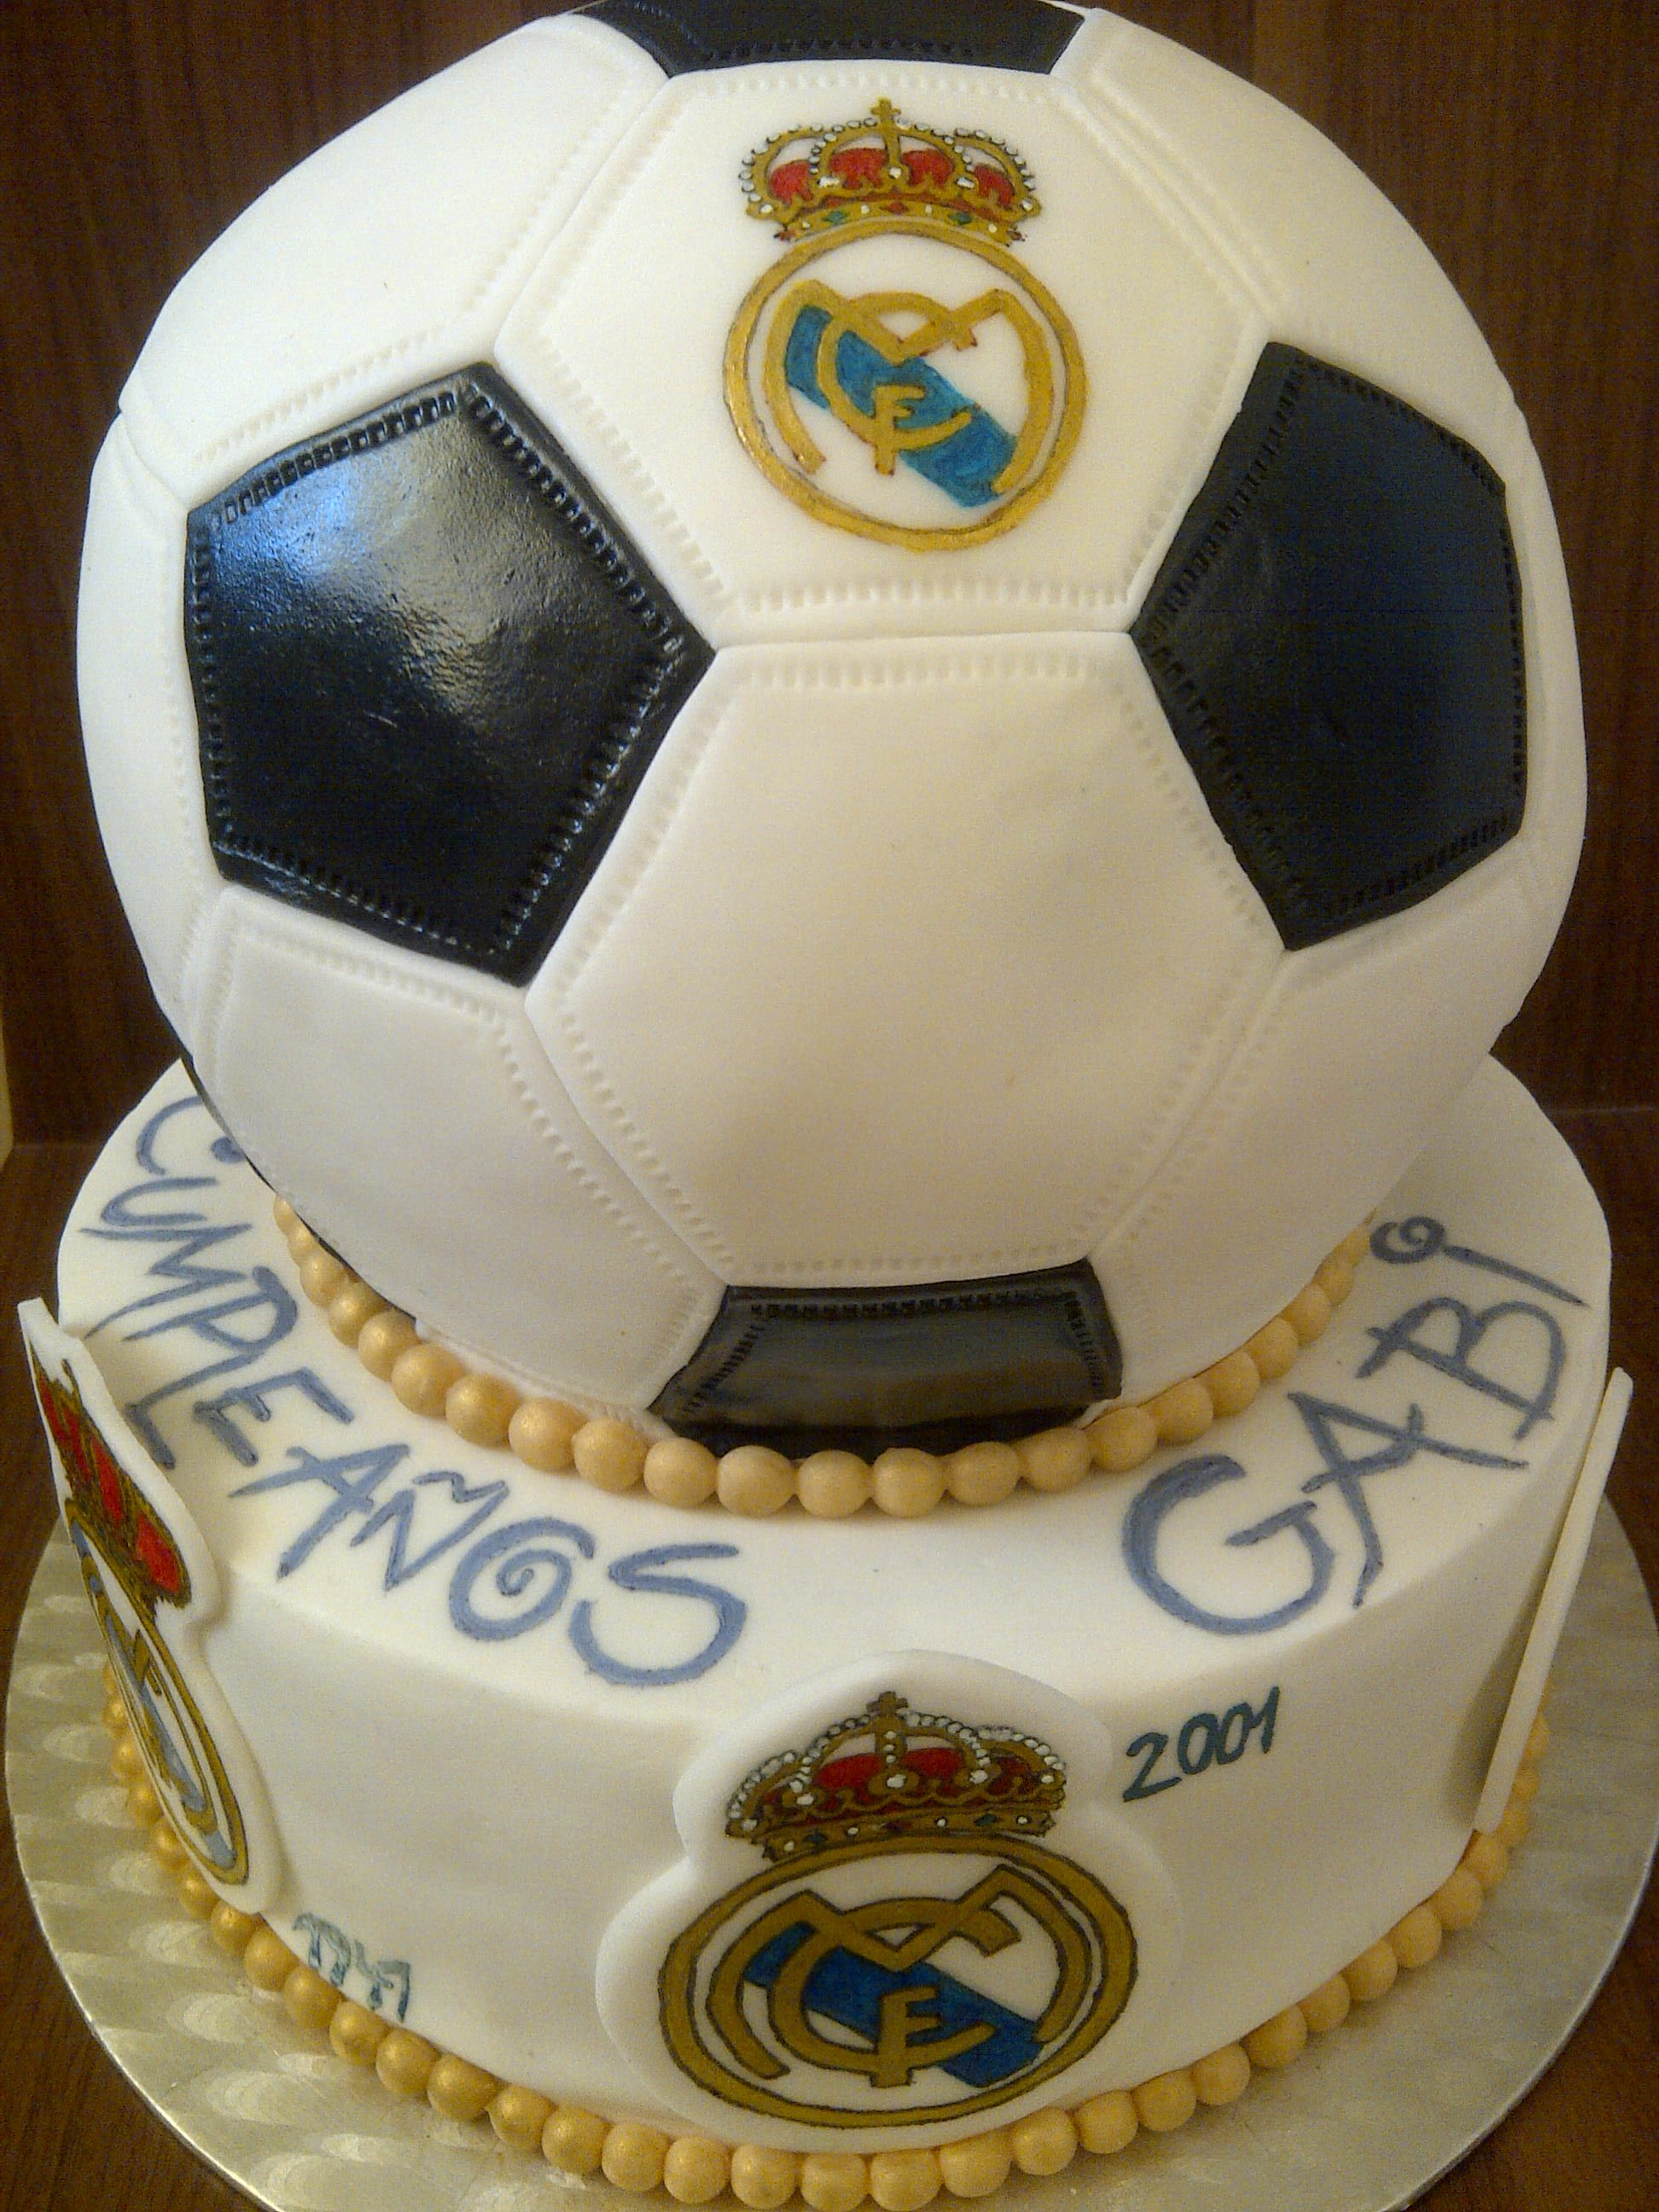 Real Madrid Cake With History Of Their Logo Kager And Cakes - Real birthday cake images